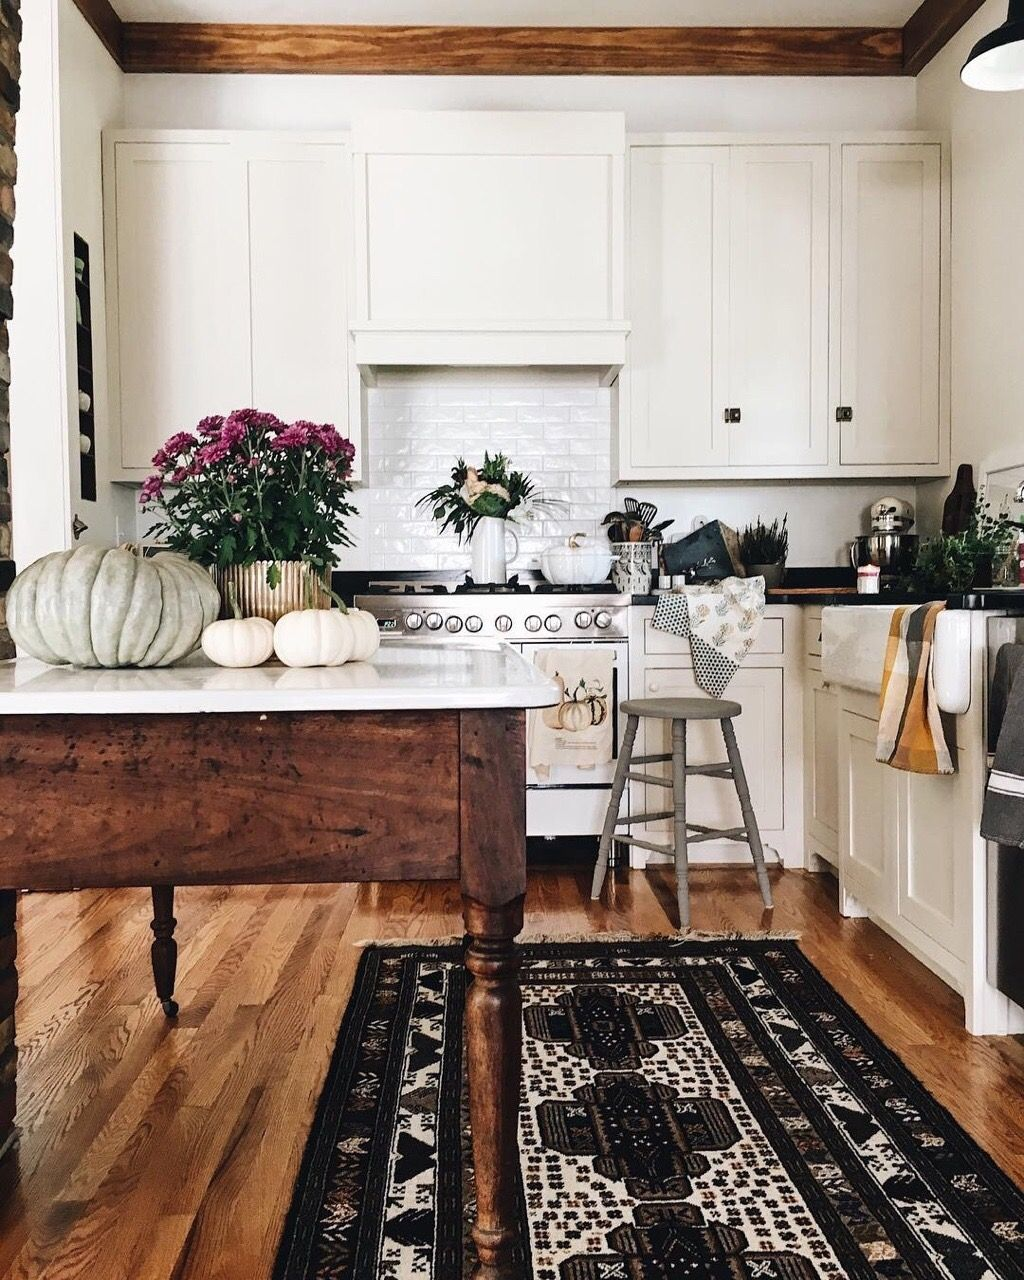 pinterest mia boho rustic kitchen decor farmhouse on home interior design kitchen id=48002